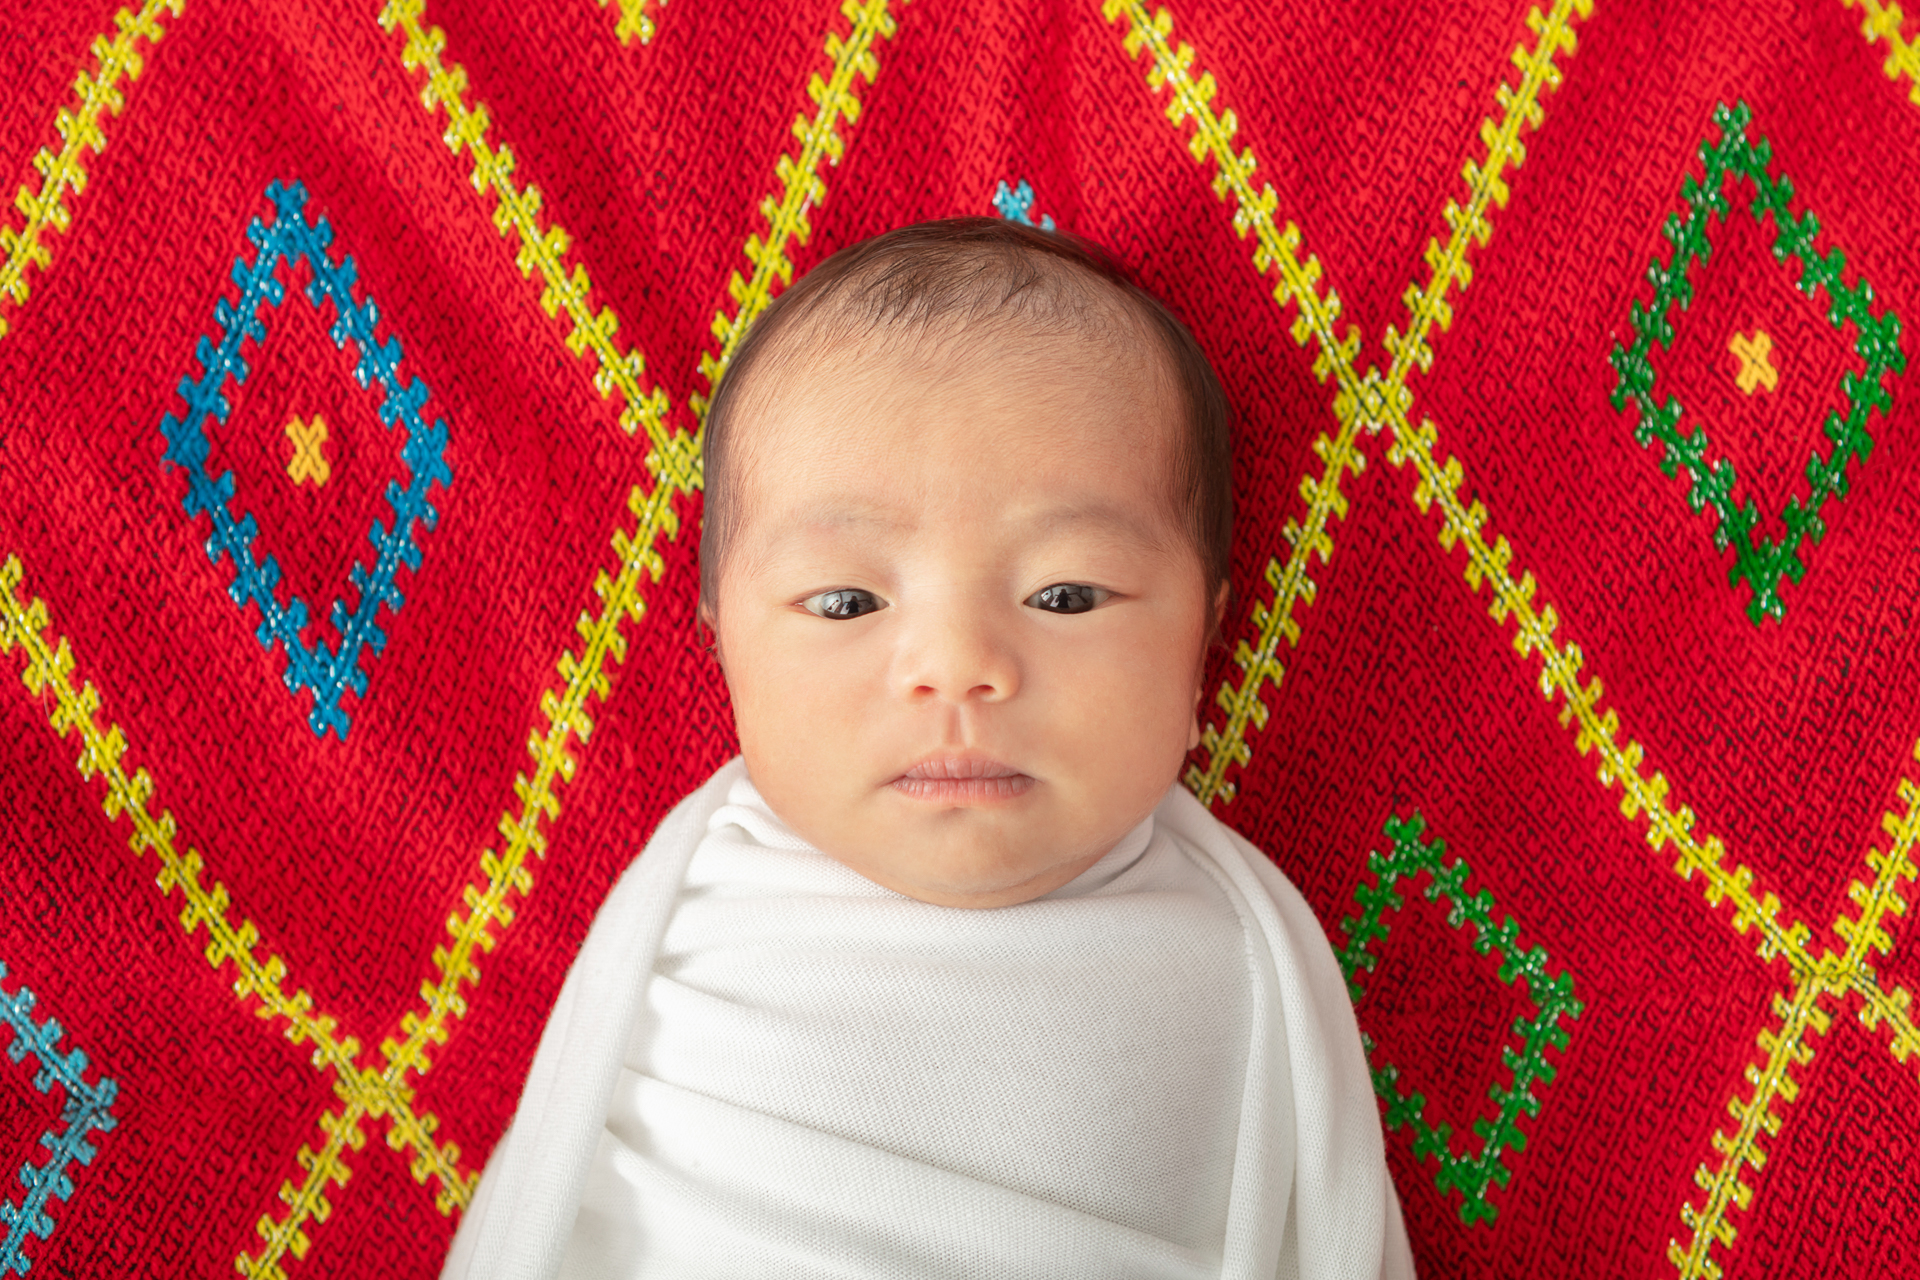 newborn baby girl looking at the camera; she is wrapped in a smooth white swaddle and has a traditional Asian garment behind her; red and blue and yellow and green diamond pattern